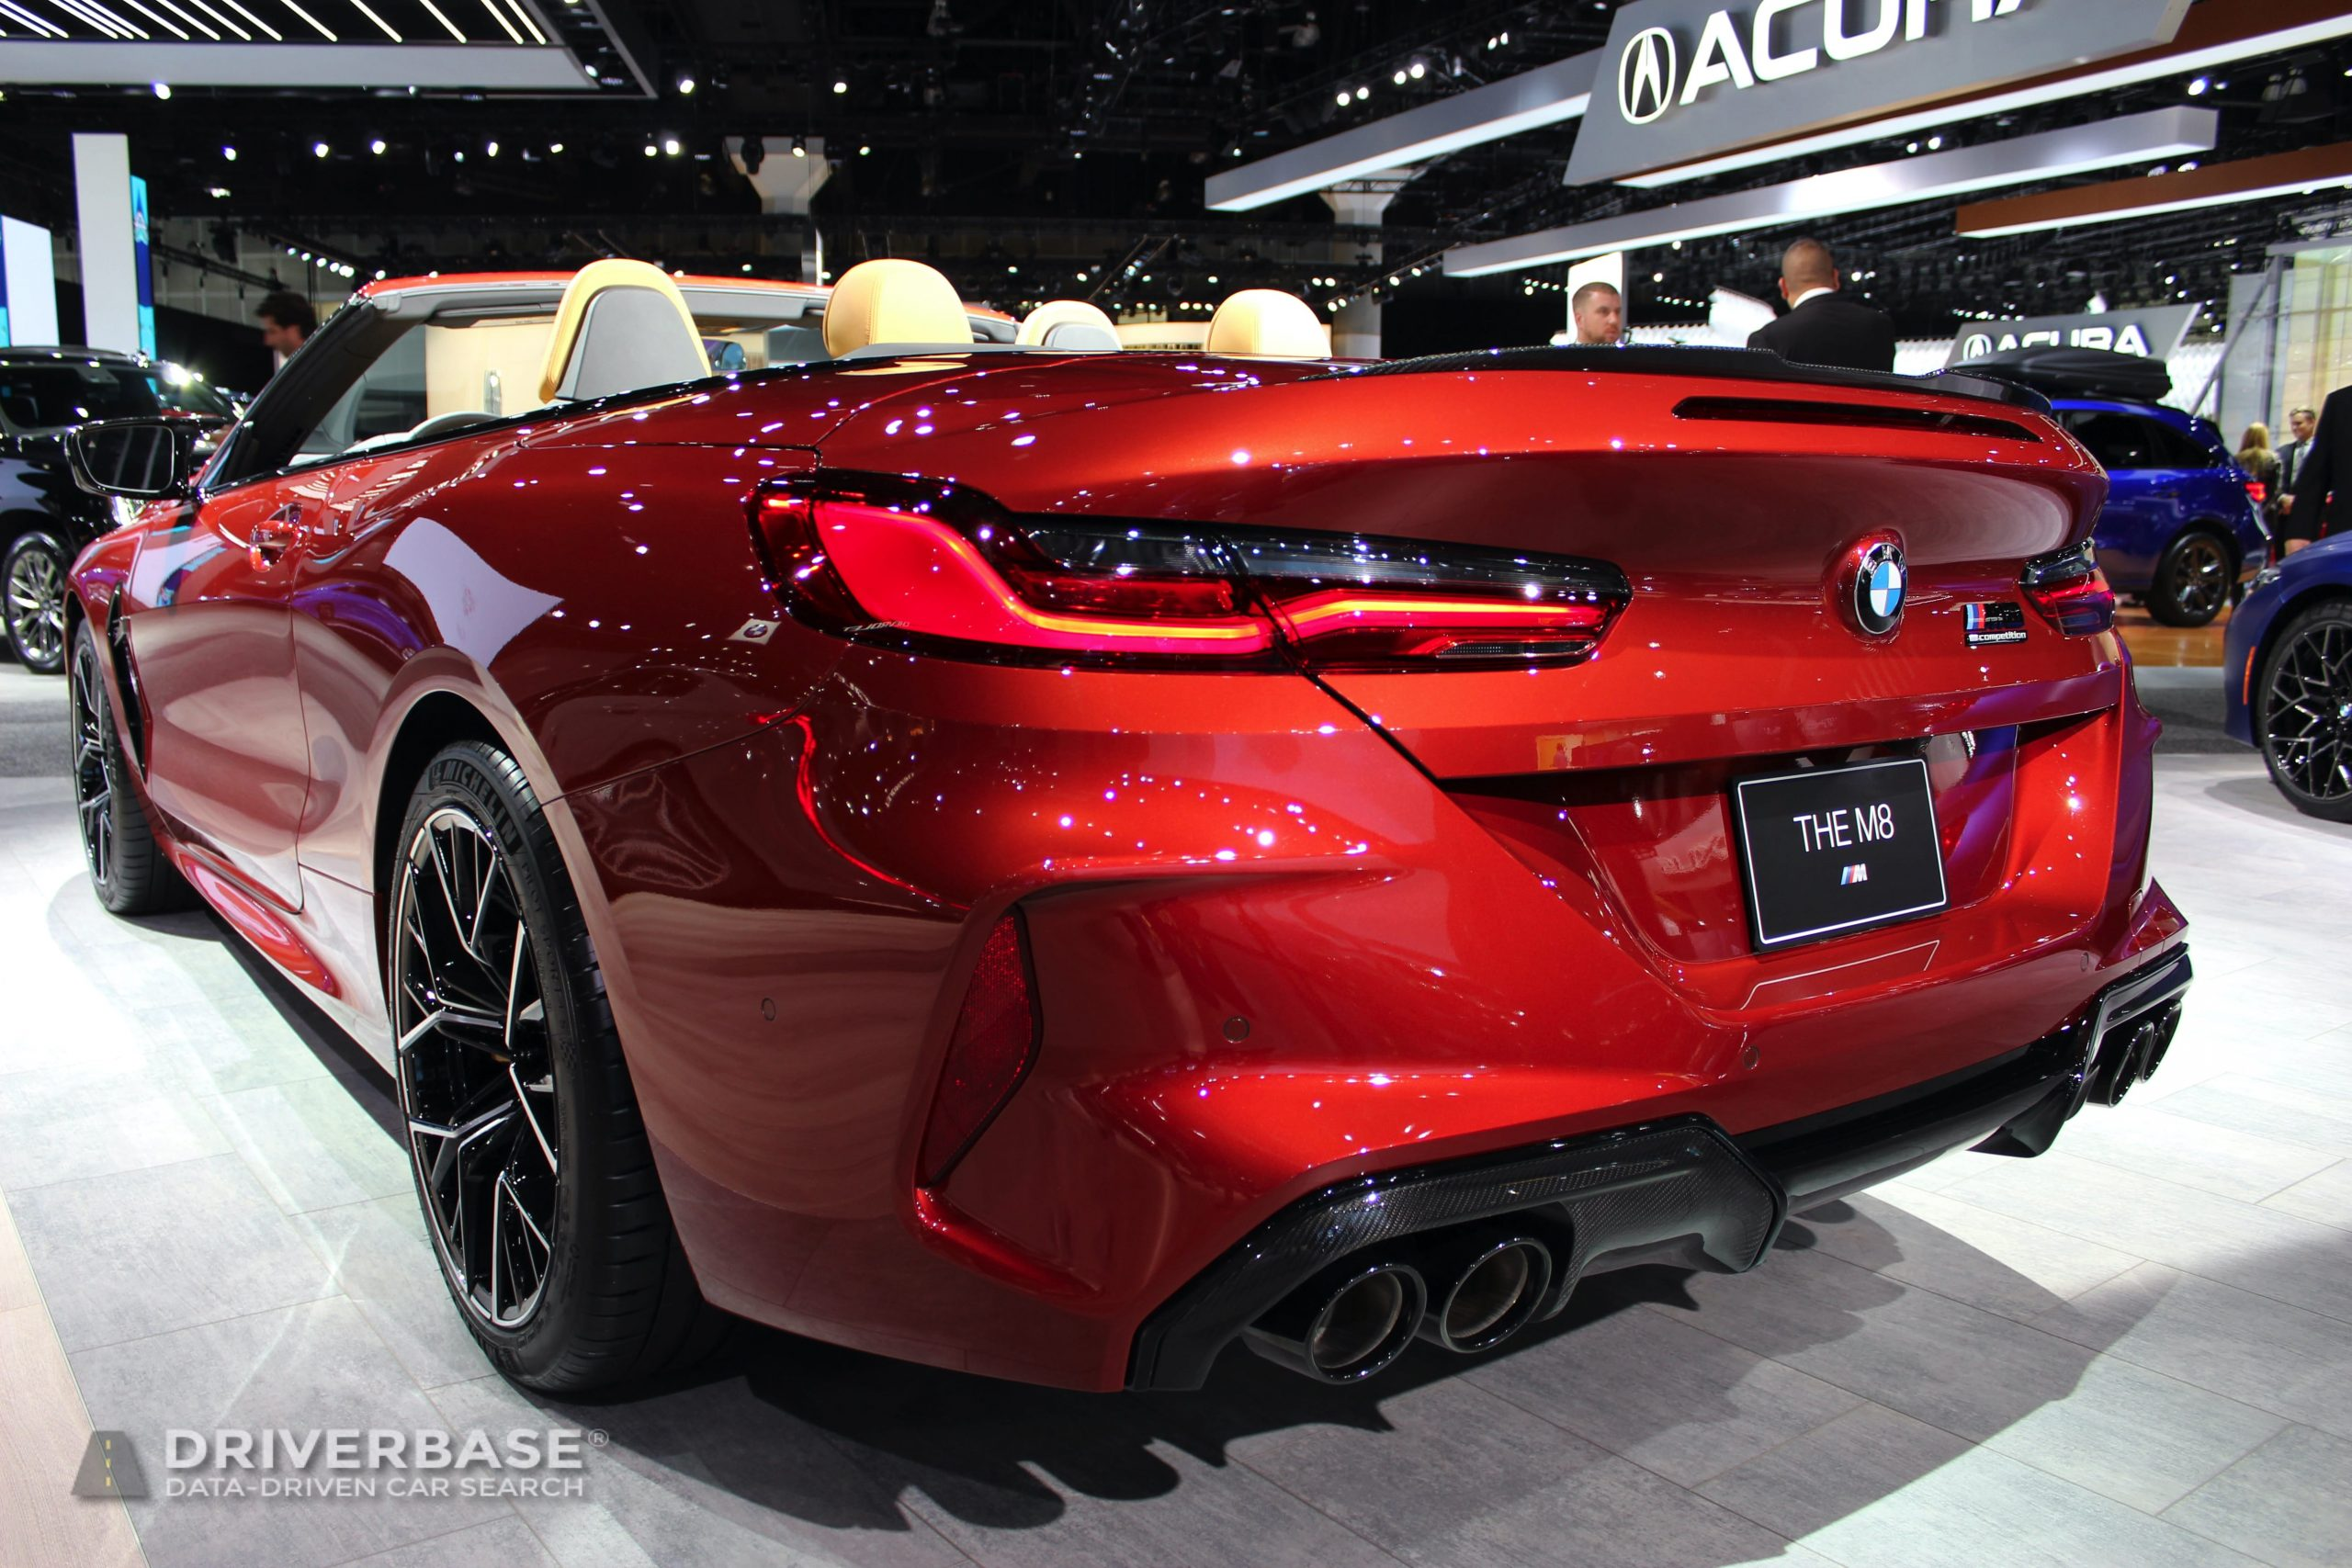 2020 BMW M8 Competition Convertible at the 2019 Los Angeles Auto Show